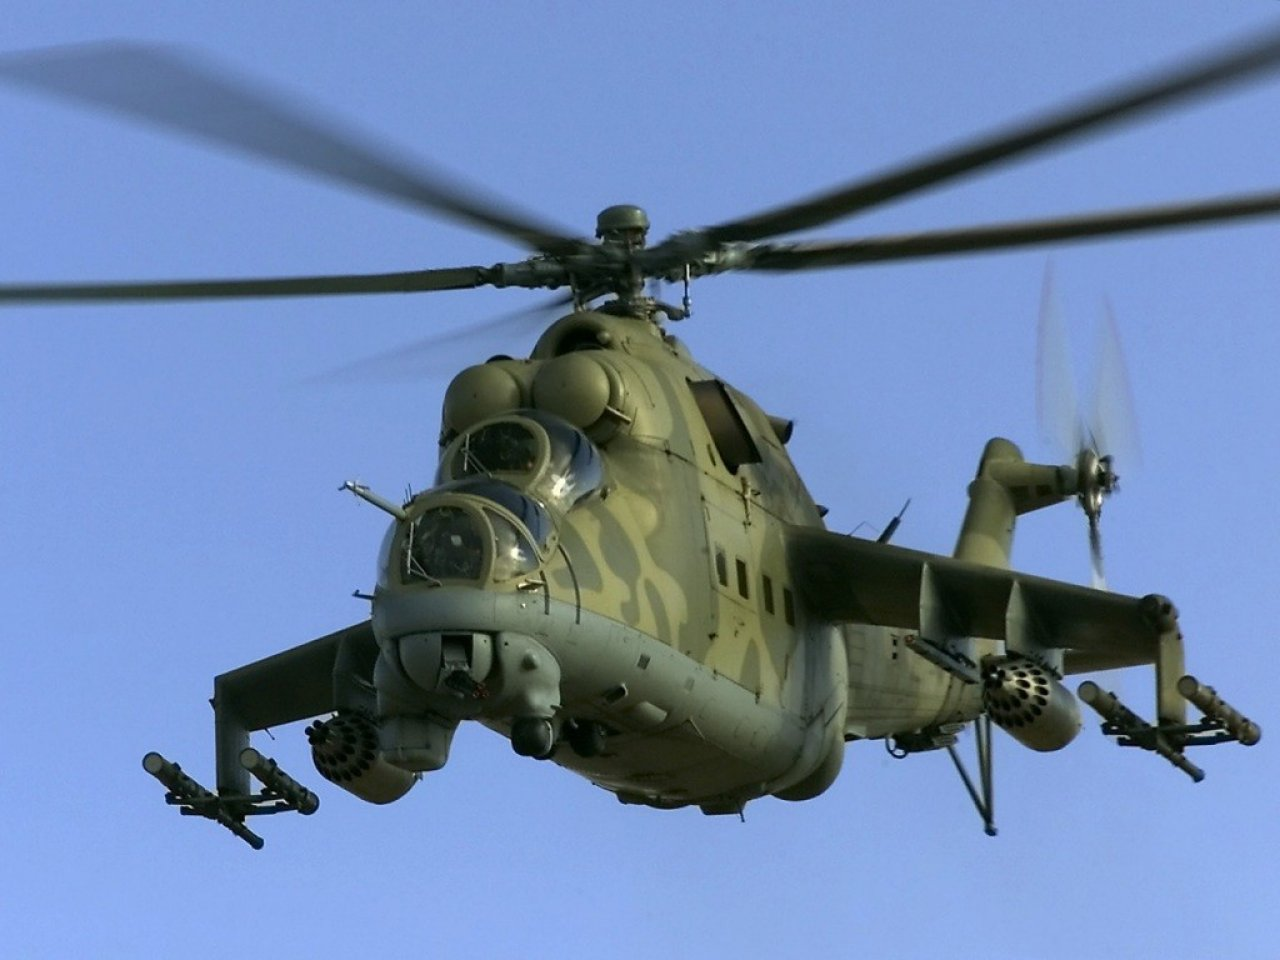 mi 24 hind military aviation helicopterjpg 1280x960